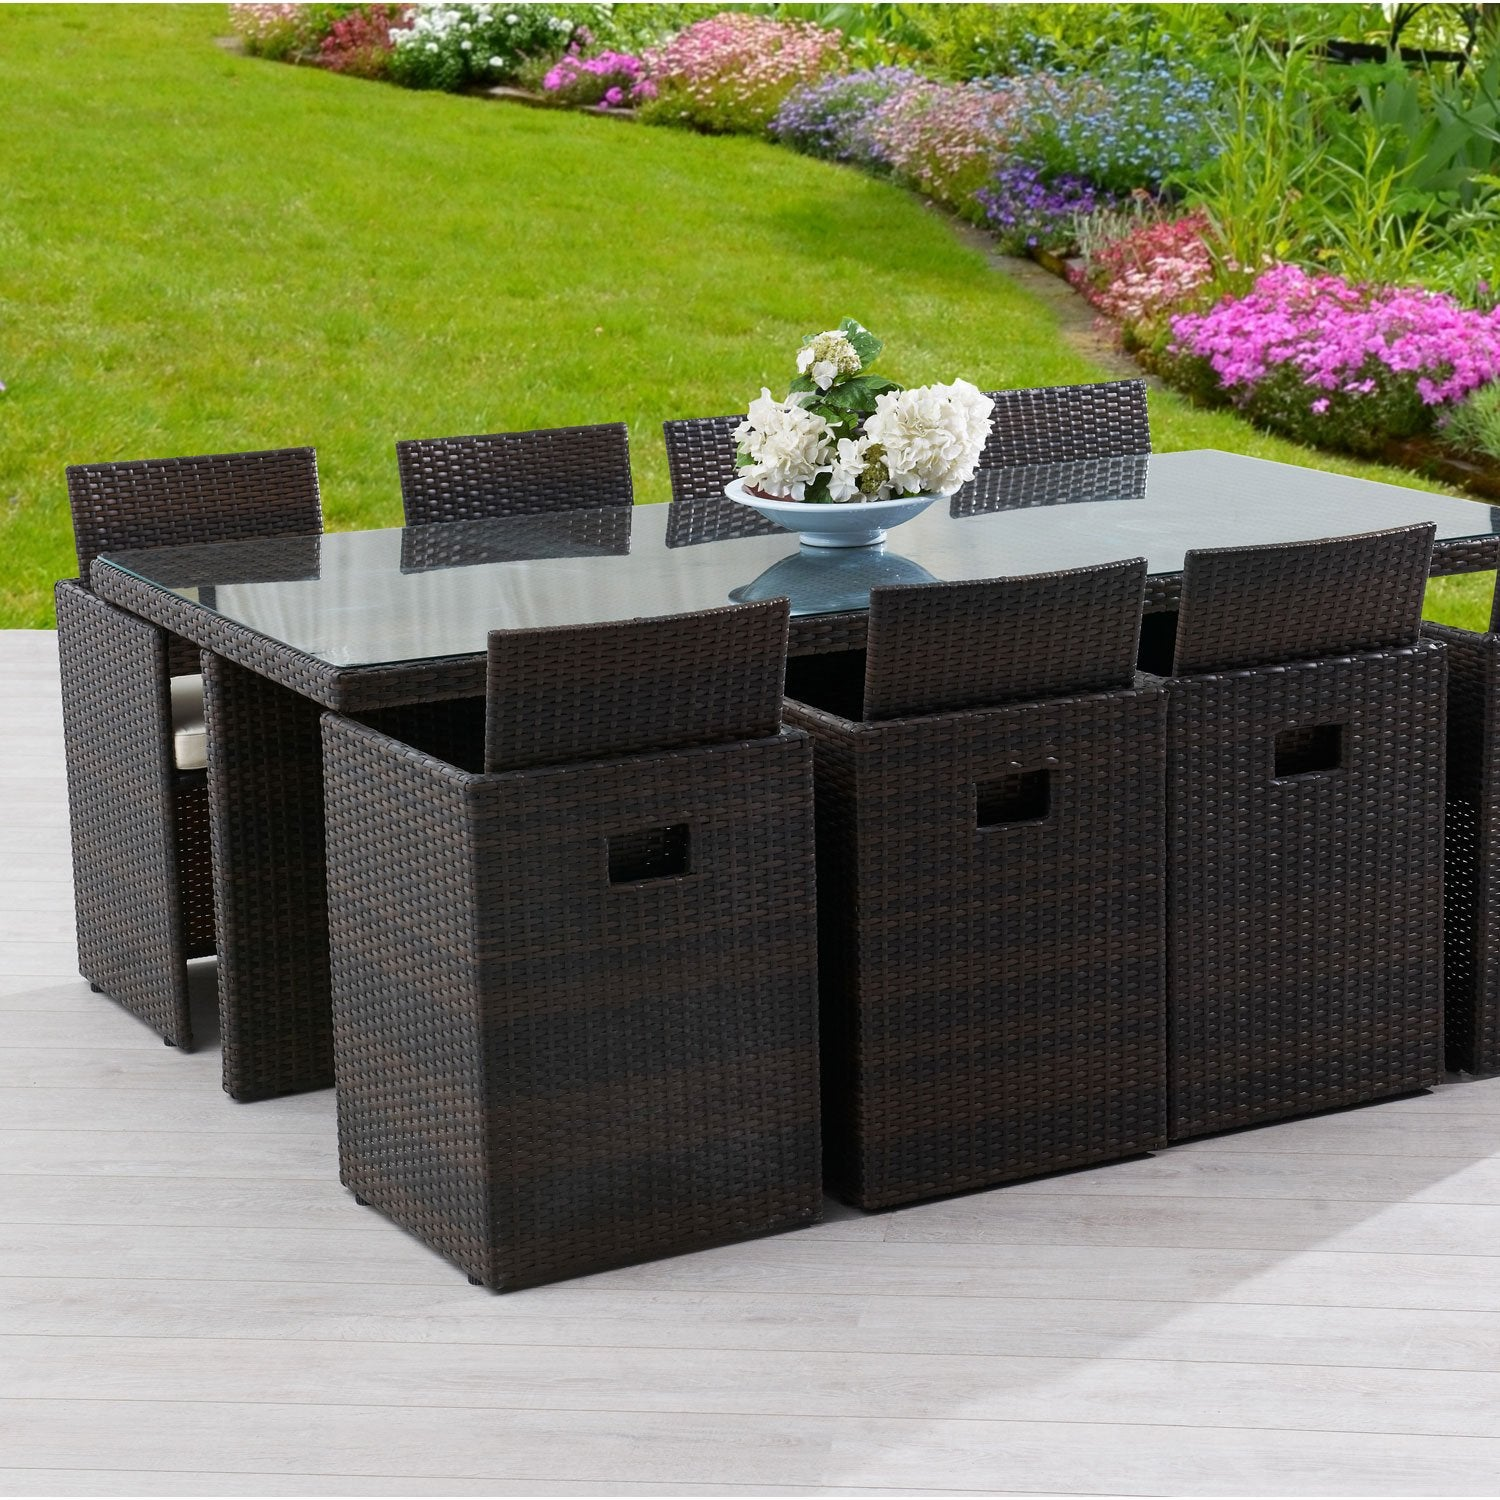 Salon de jardin encastrable r sine tress e marron 1 table for Salon de jardin aluminium et resine